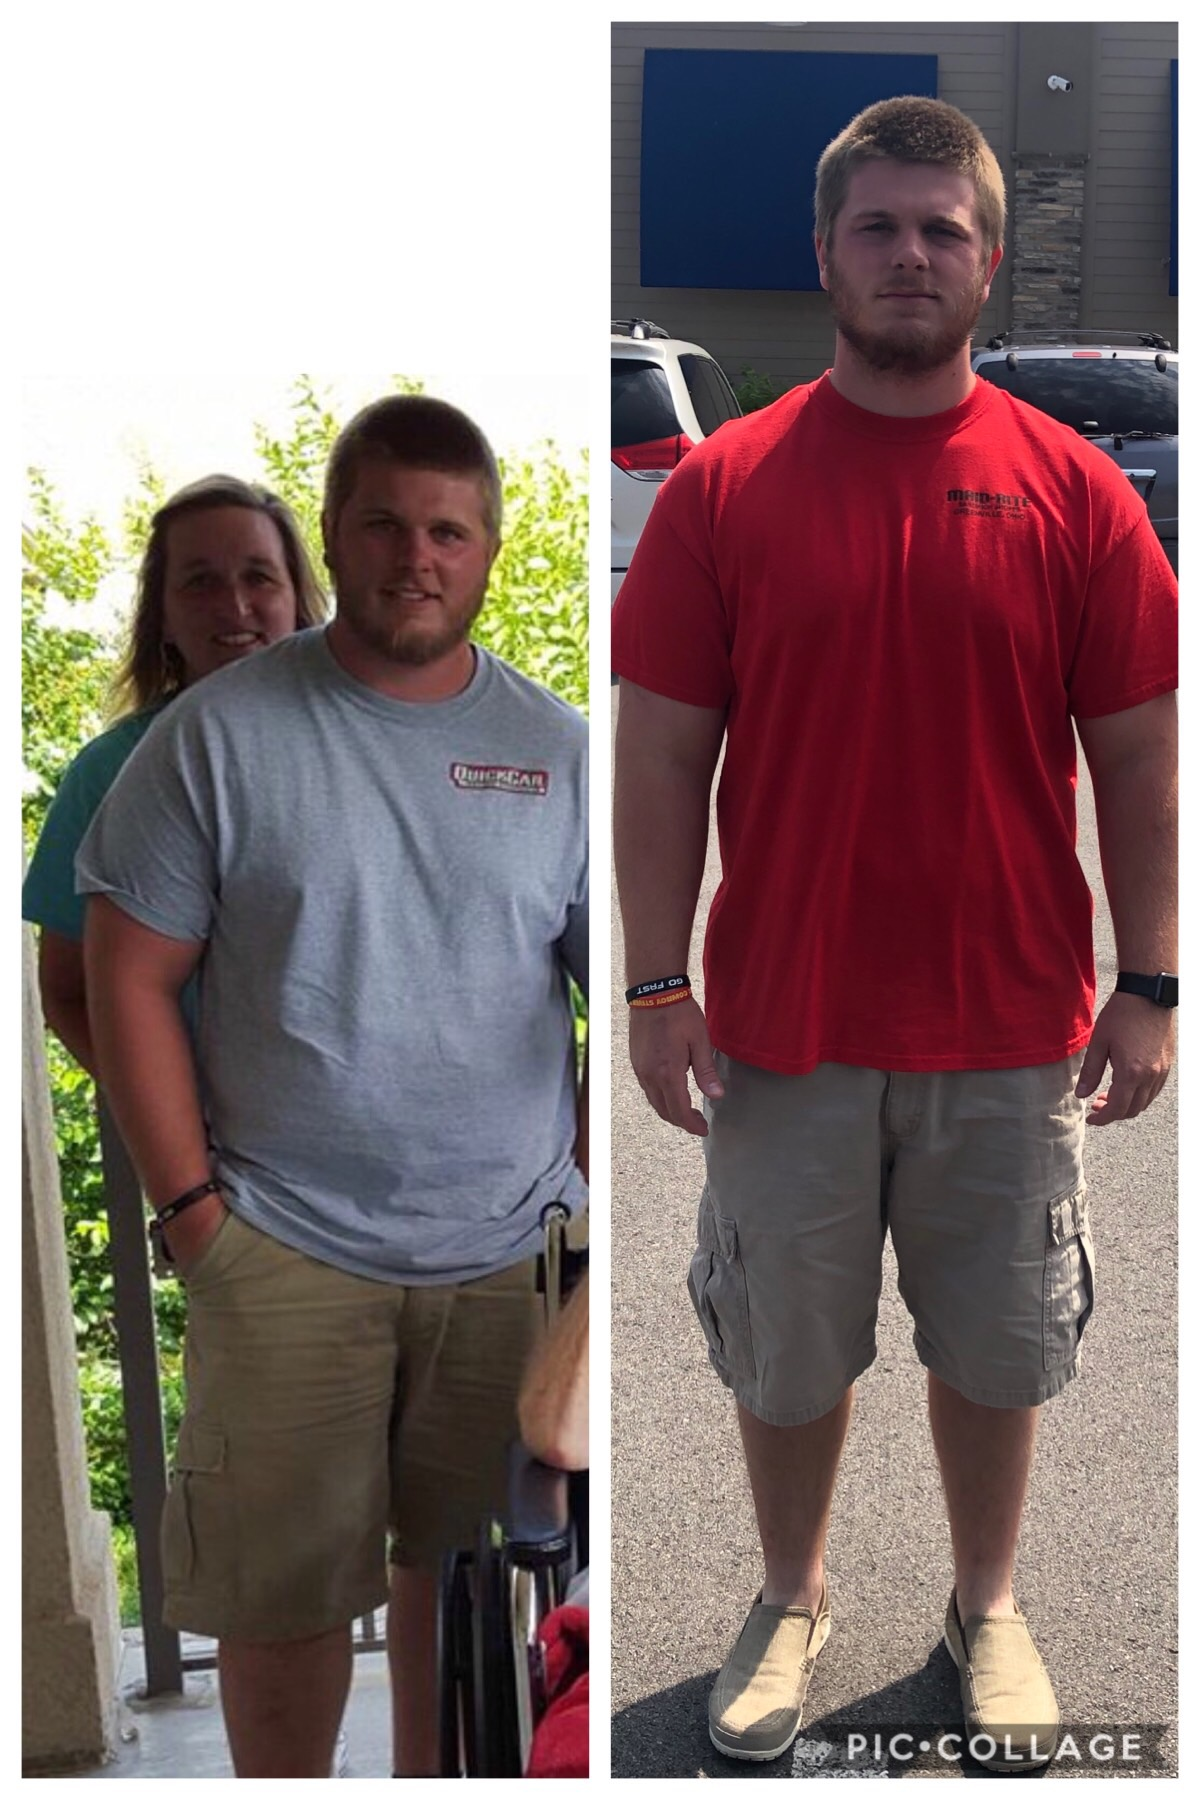 Using his programs has helped me go from 260lbs down to 205lbs. I will continue to use these programs for my fitness journey. - Justin F.